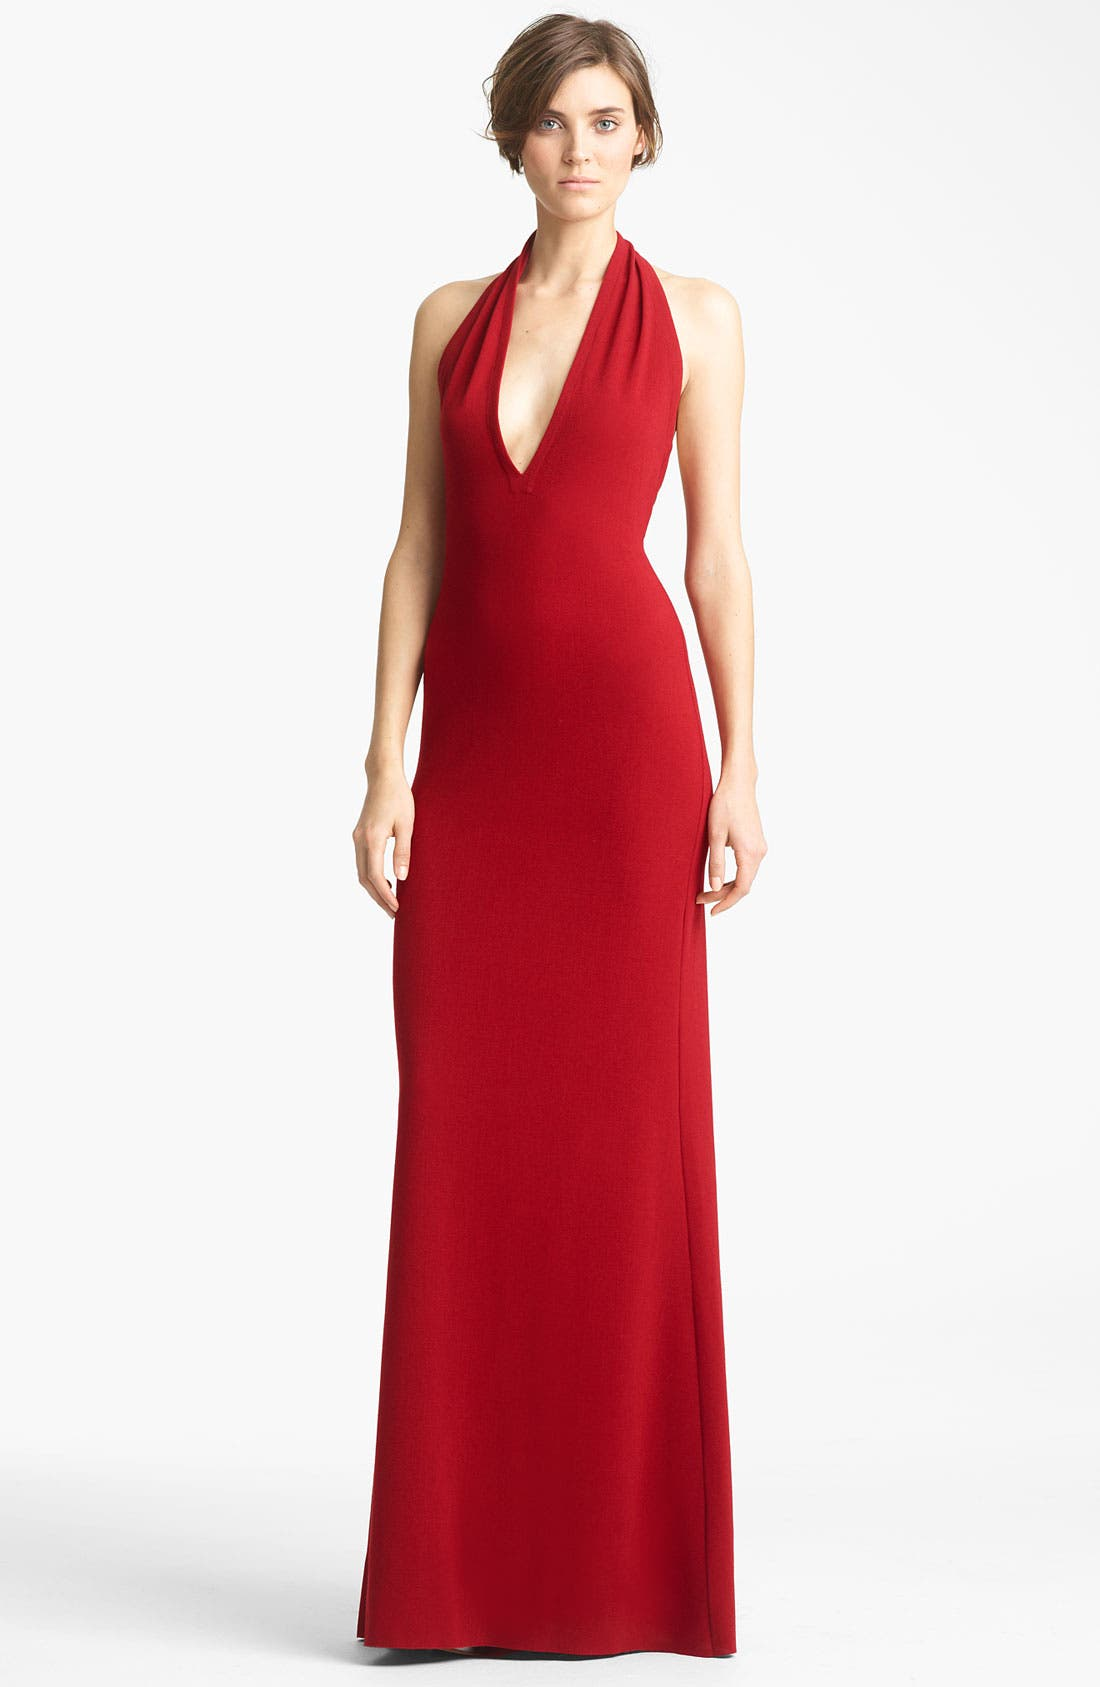 Main Image - Yigal Azrouël Crepe Halter Gown